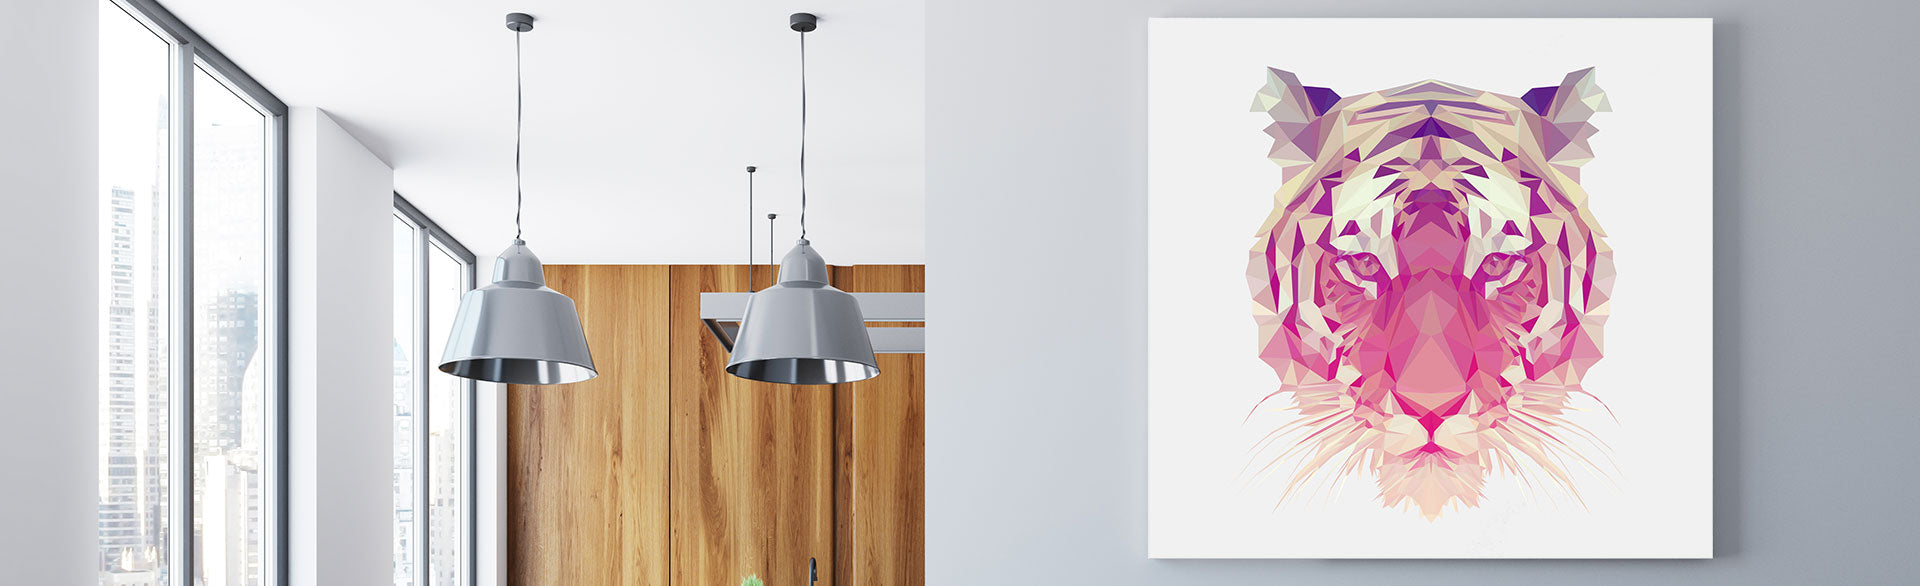 Here you can find all colours canvas prints, from classic black and white art prints to modern minimalist colourful prints. If you are looking for a certain colour, please use the filter by colour section and select your desired colour.